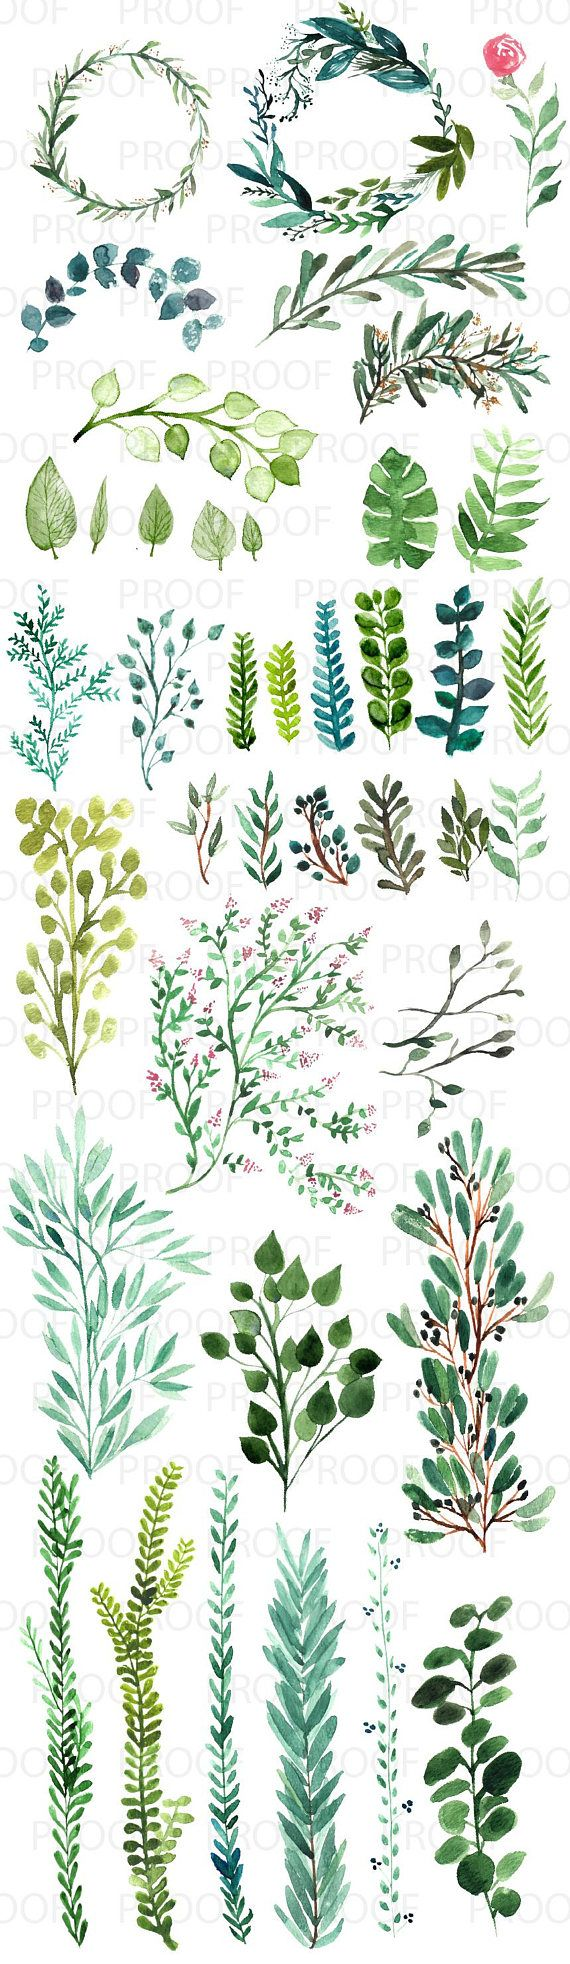 40 Watercolor Botanical Greenery Clipart Download Commercial Use